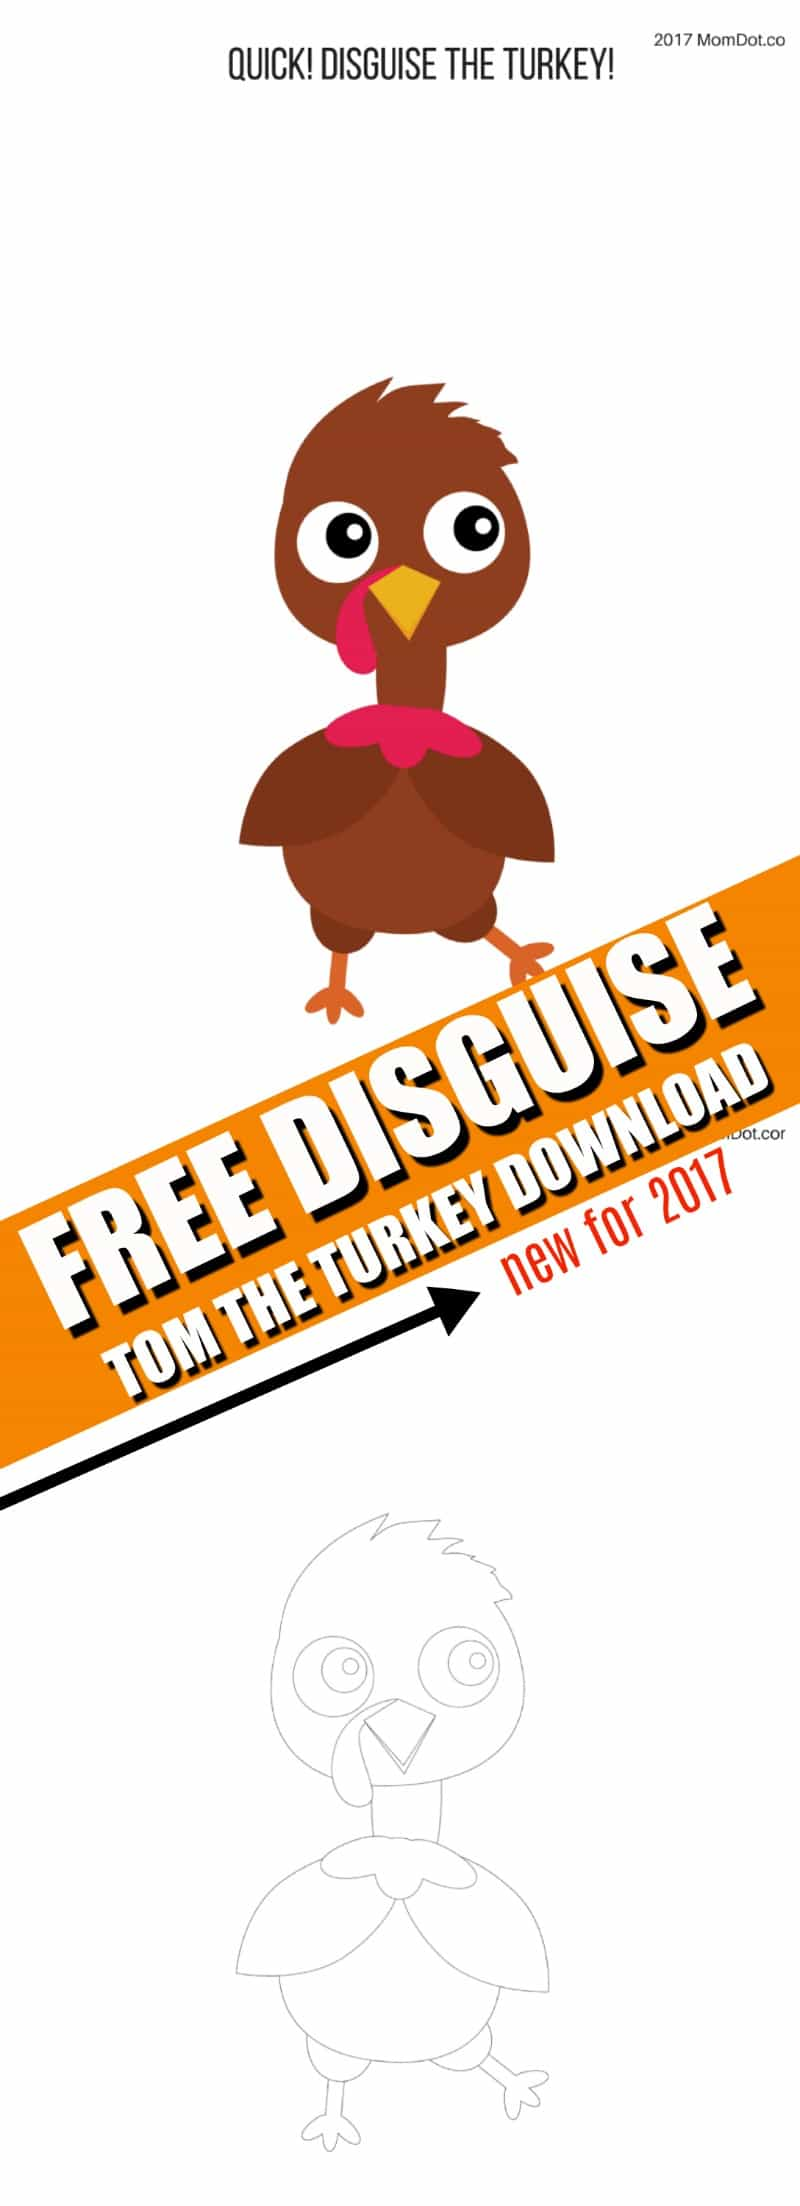 Disguise the turkey downloads  | New Turkeys for 2017 Plus download all other Free Turkey Templates